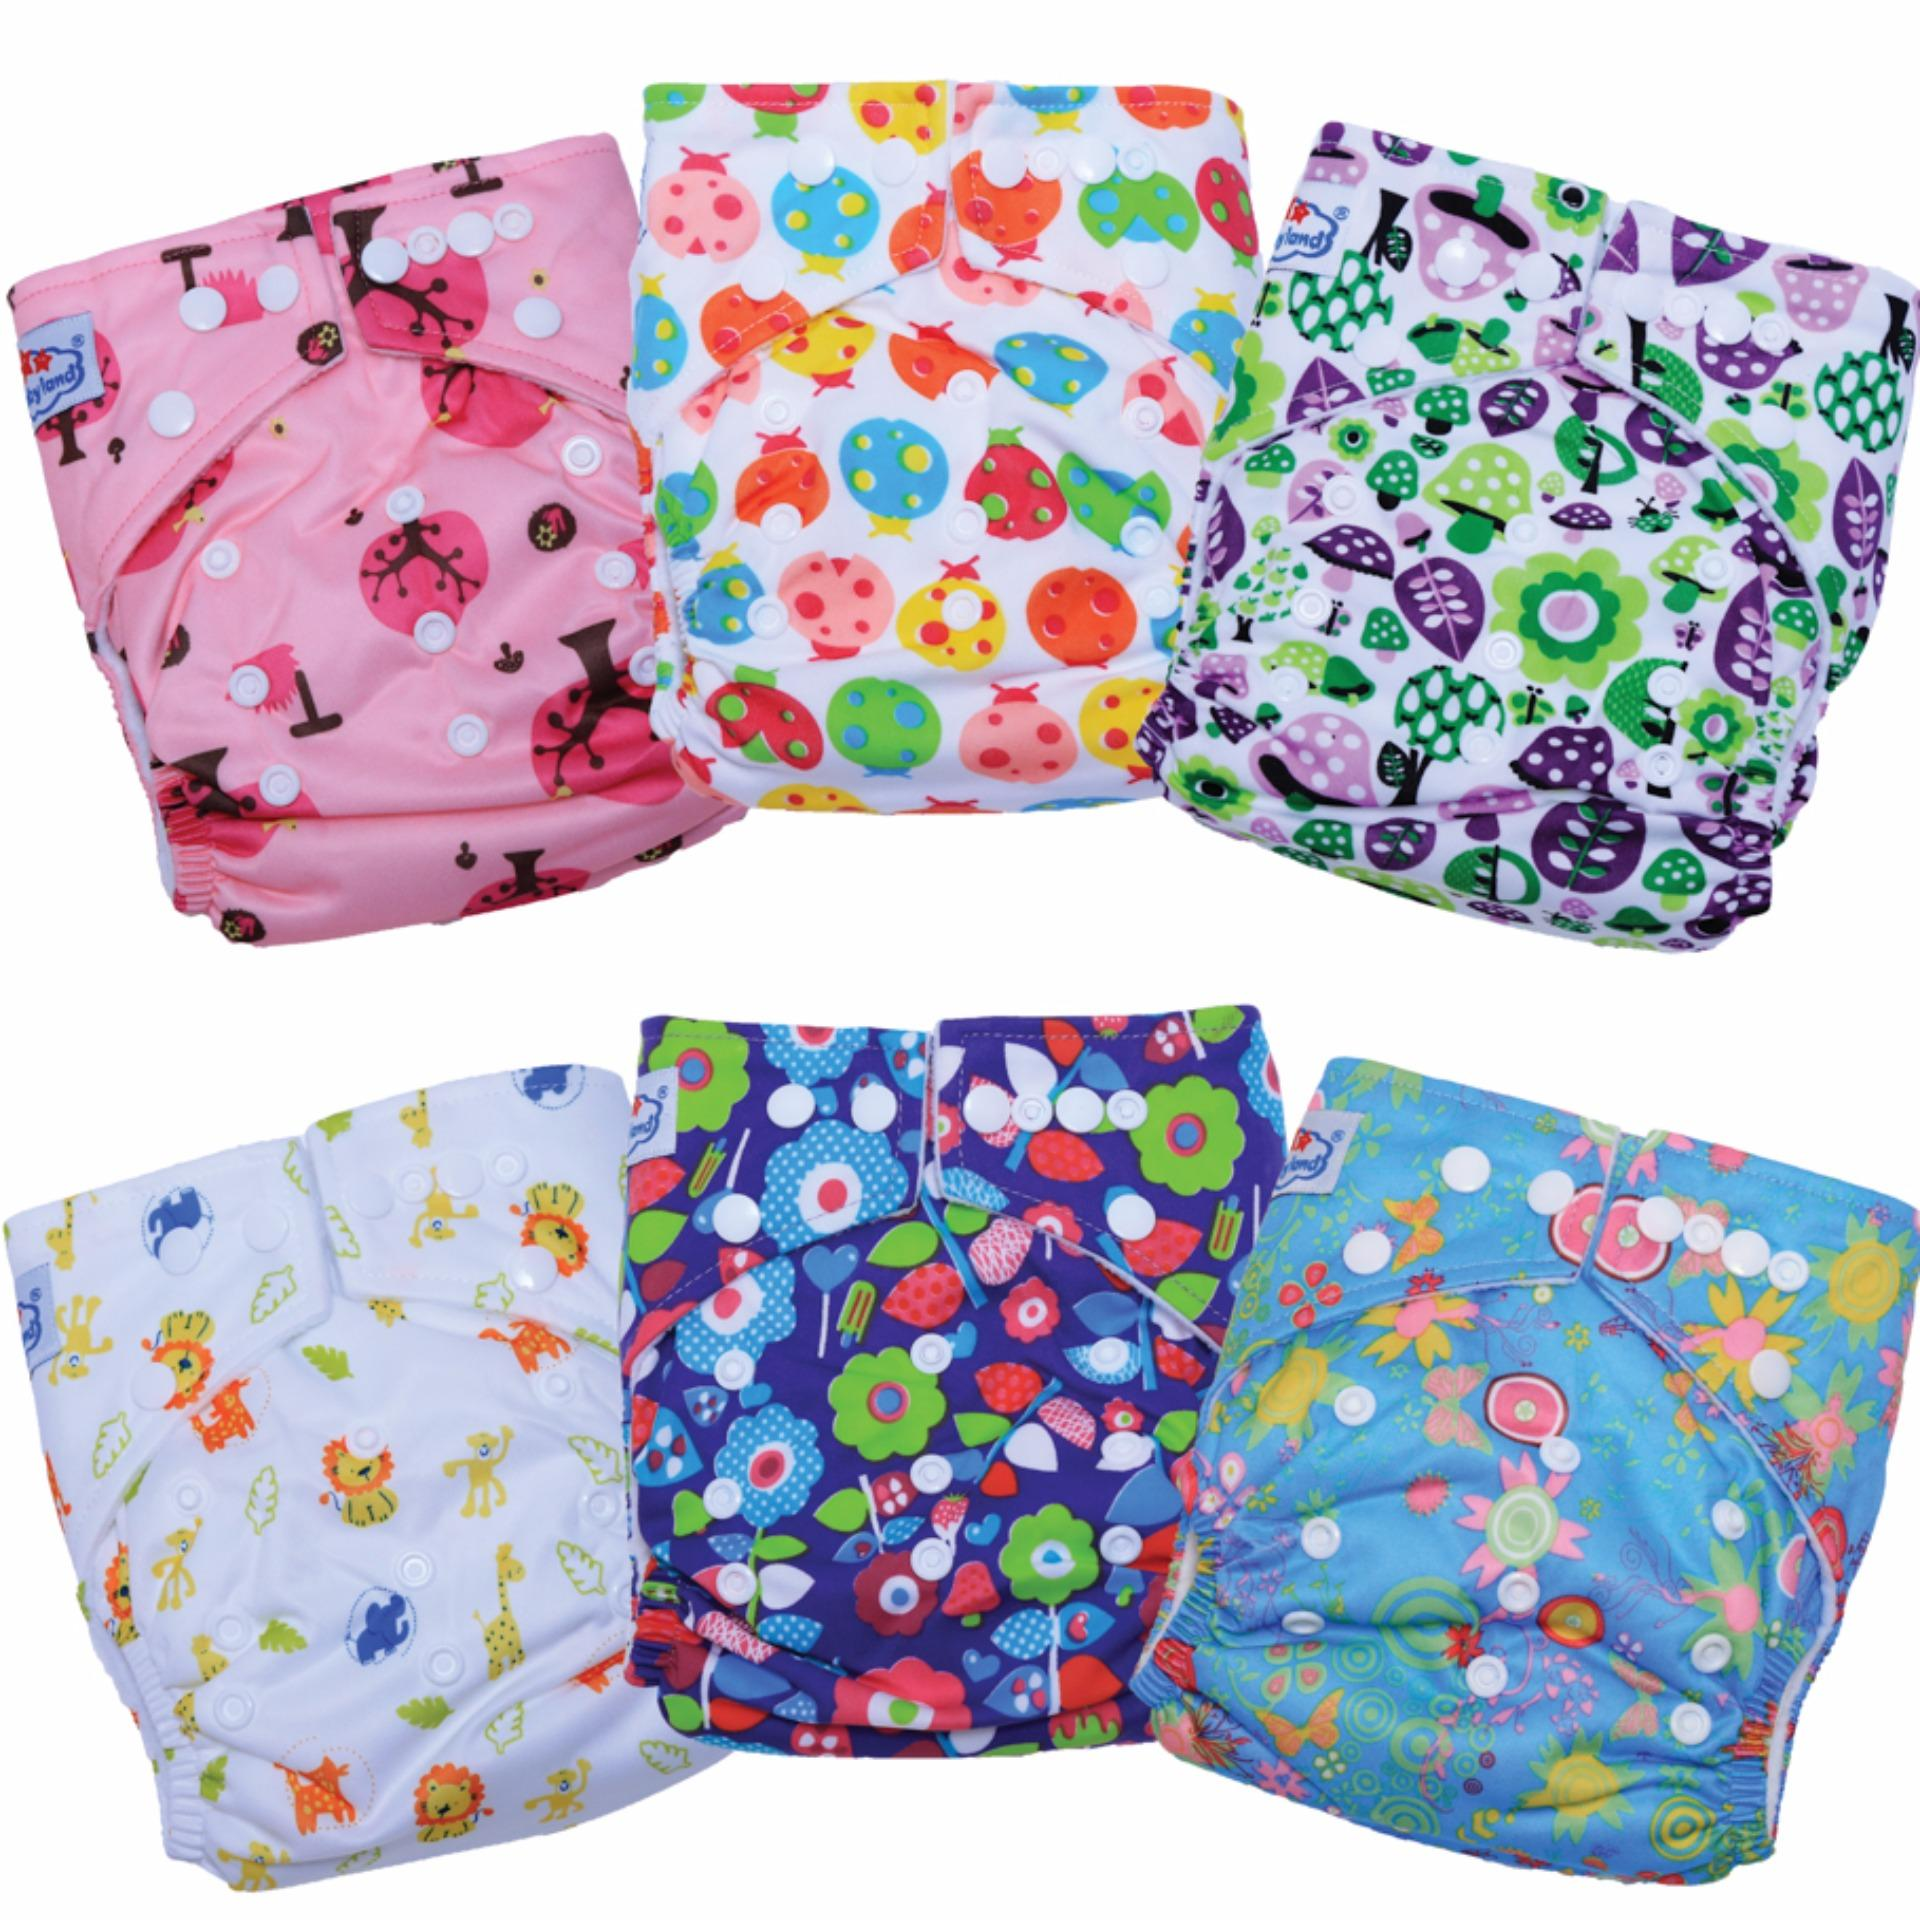 Diskon Babyland Super Package 6 Pcs Clodi Babyland Pocket With 12 Insert Microfiber 3 Ply For Baby G*rl